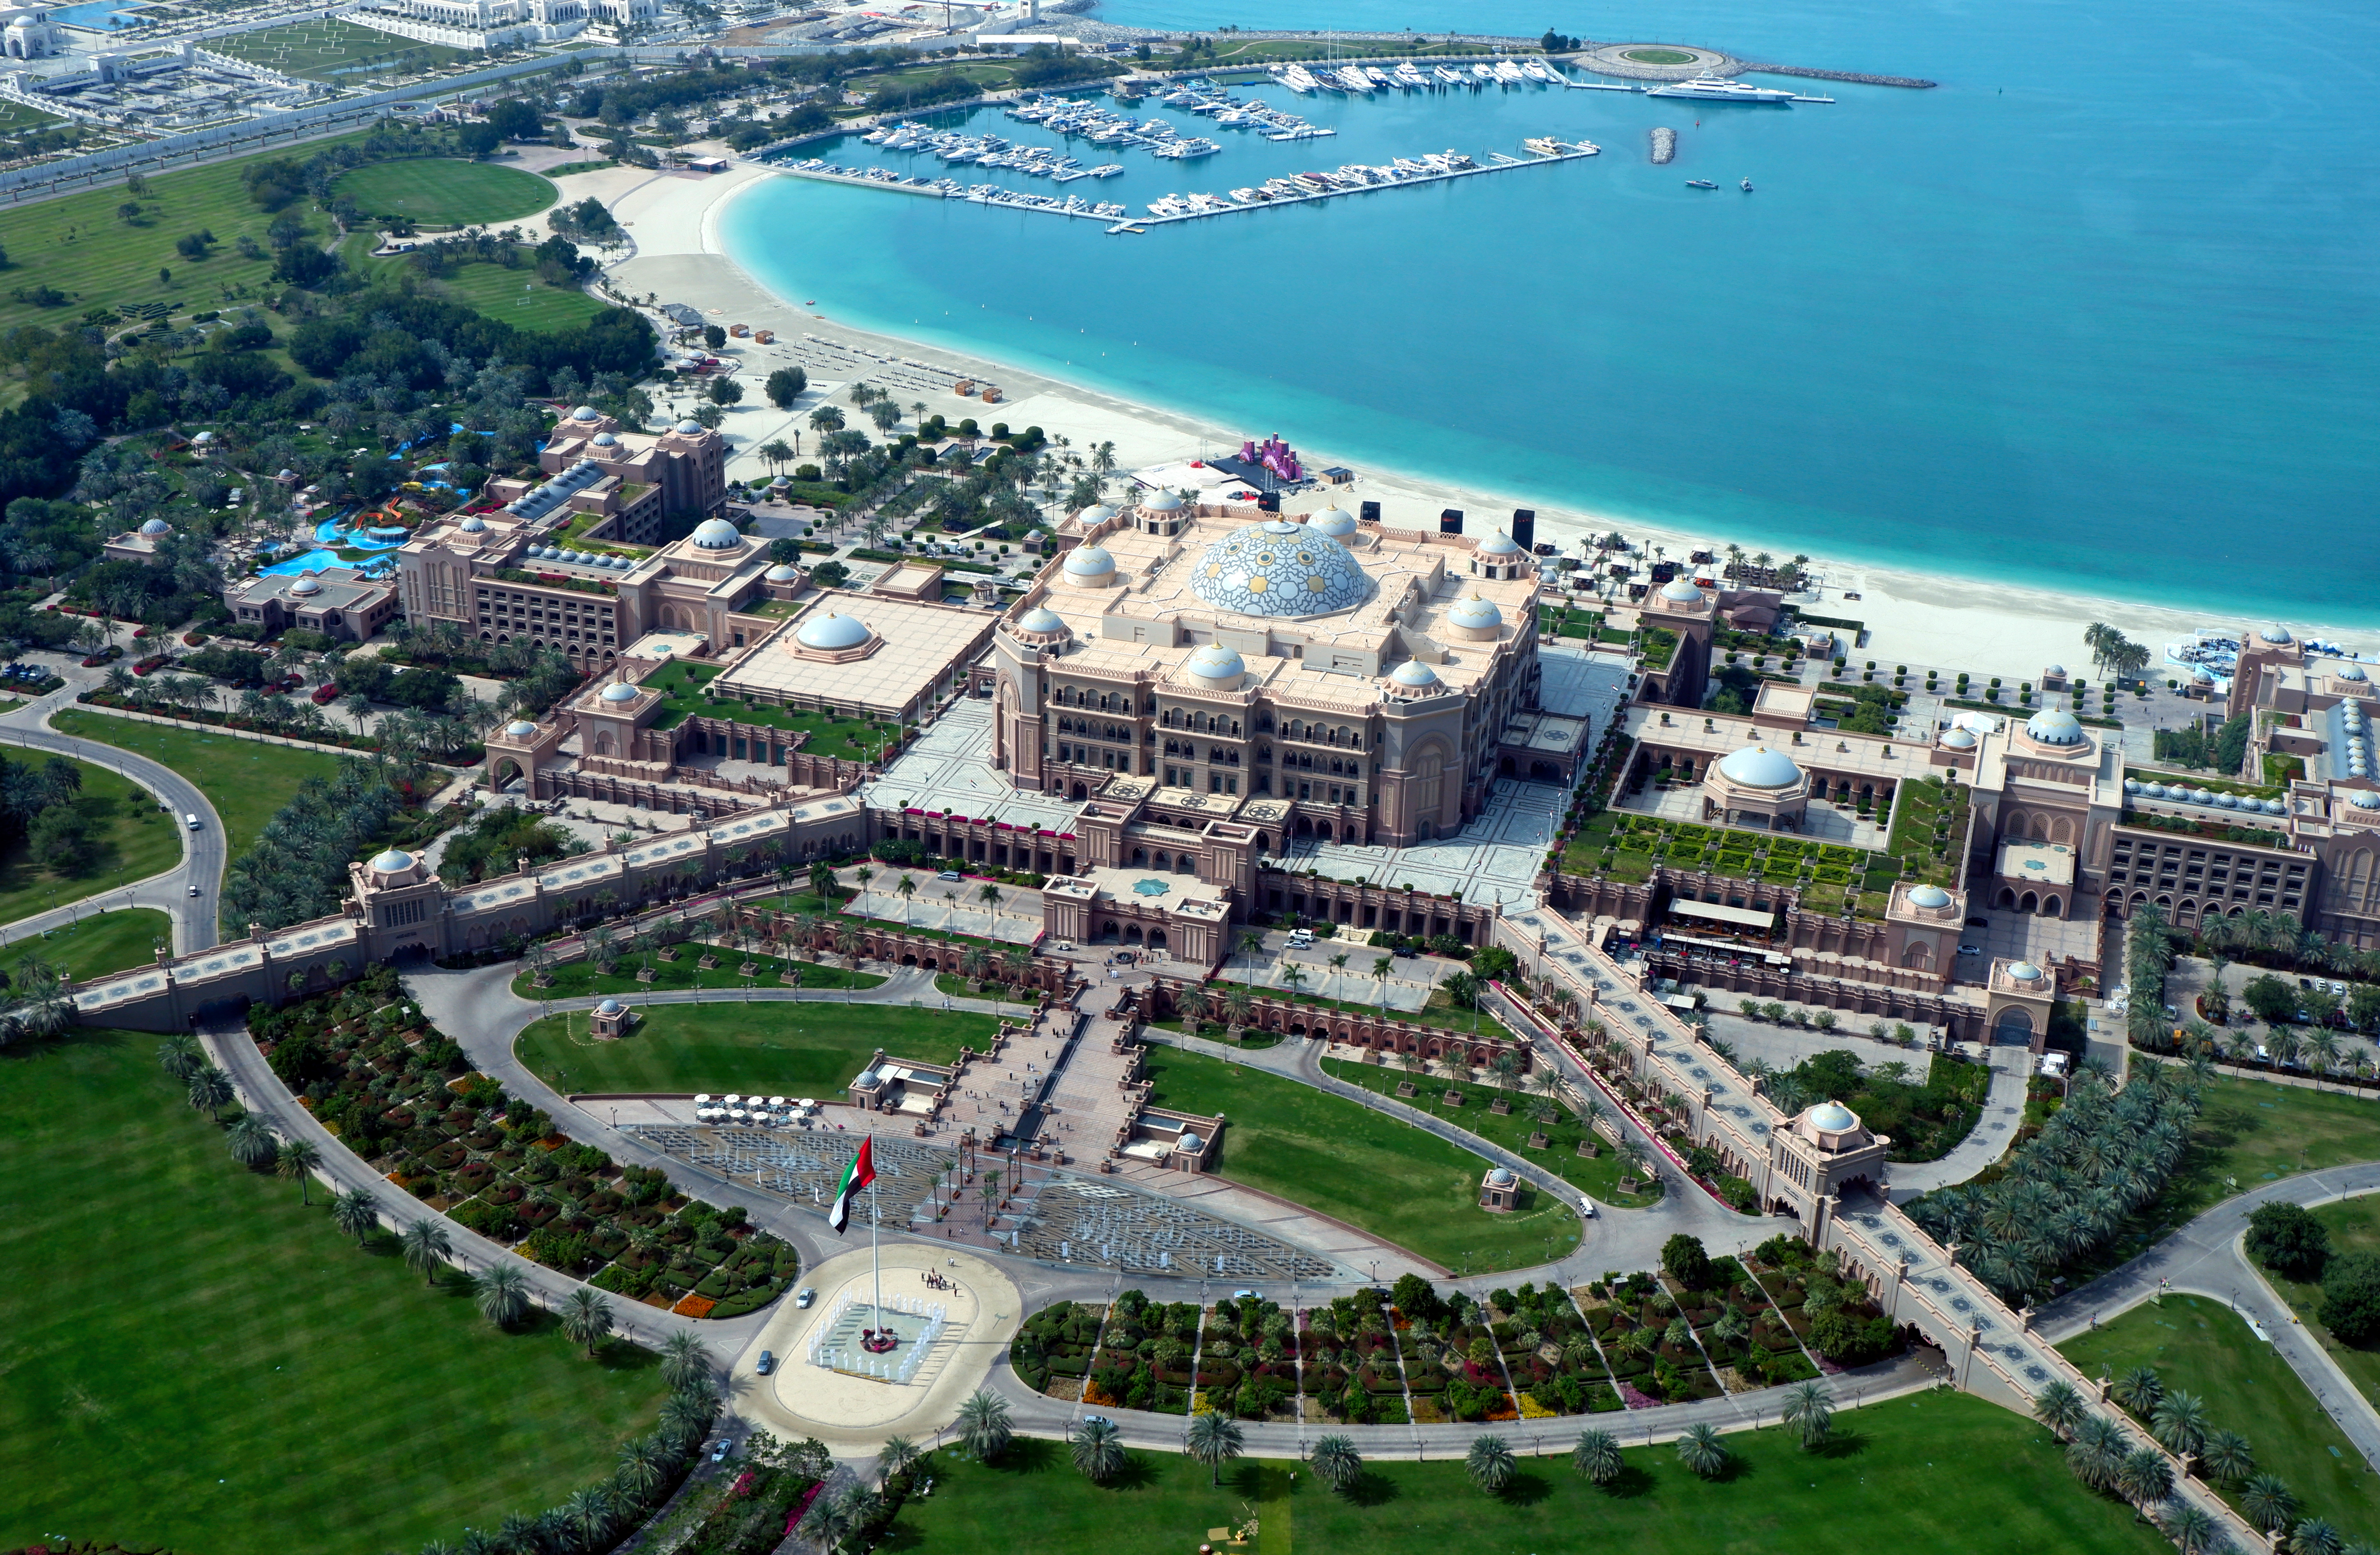 Emirates Palace - Wikipedia